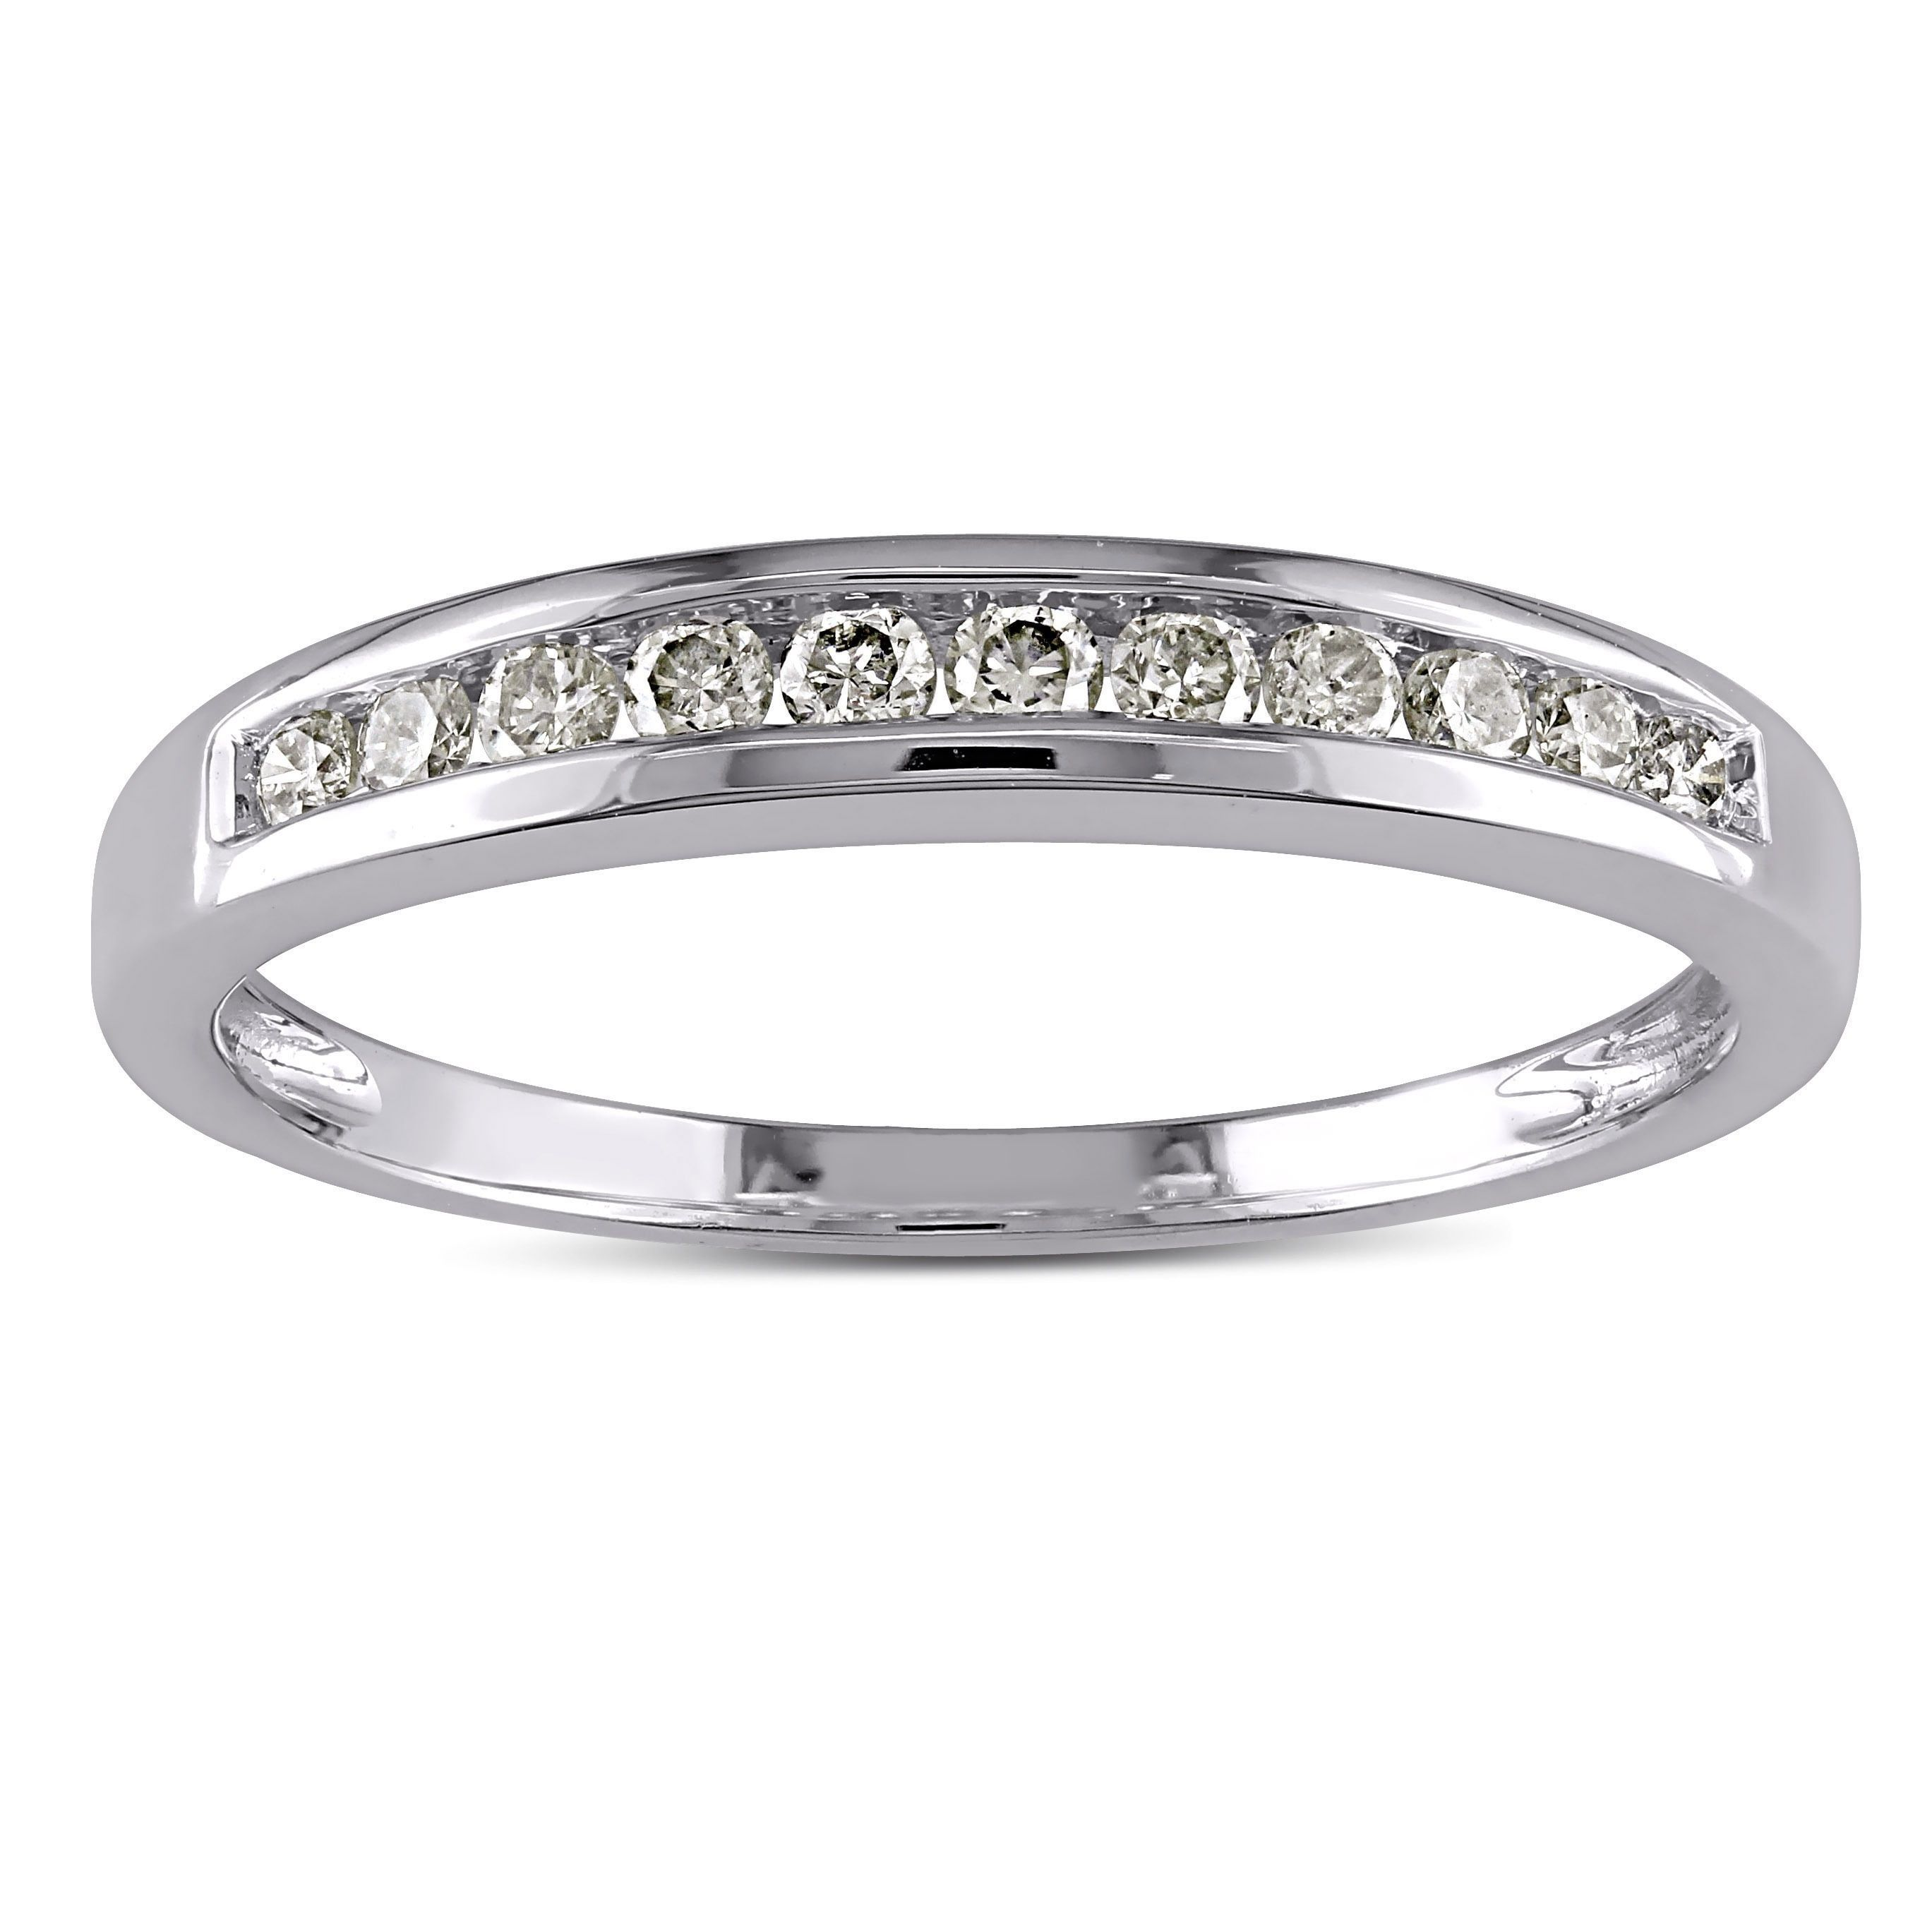 engagement for ideas beautiful bezel band channel set htm ring gallery with anniversary looking wedding bands styles